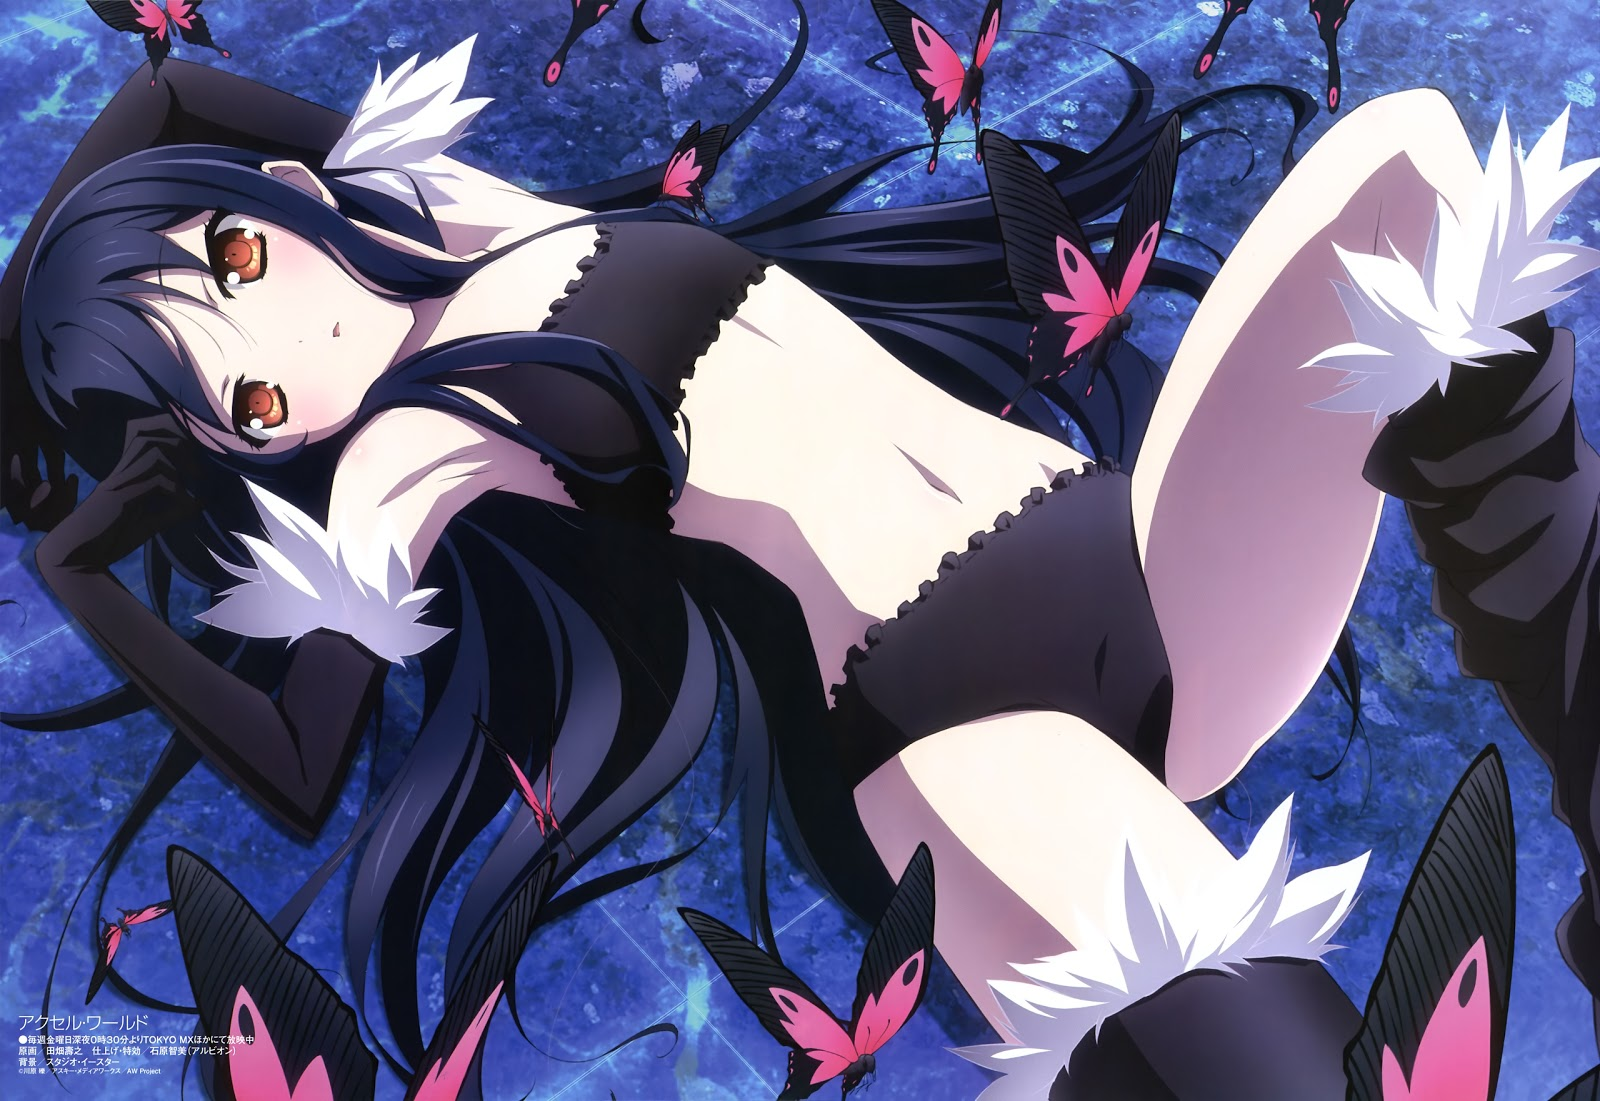 Accel World Kuroyukihime   Your daily Anime Wallpaper and Fan Art